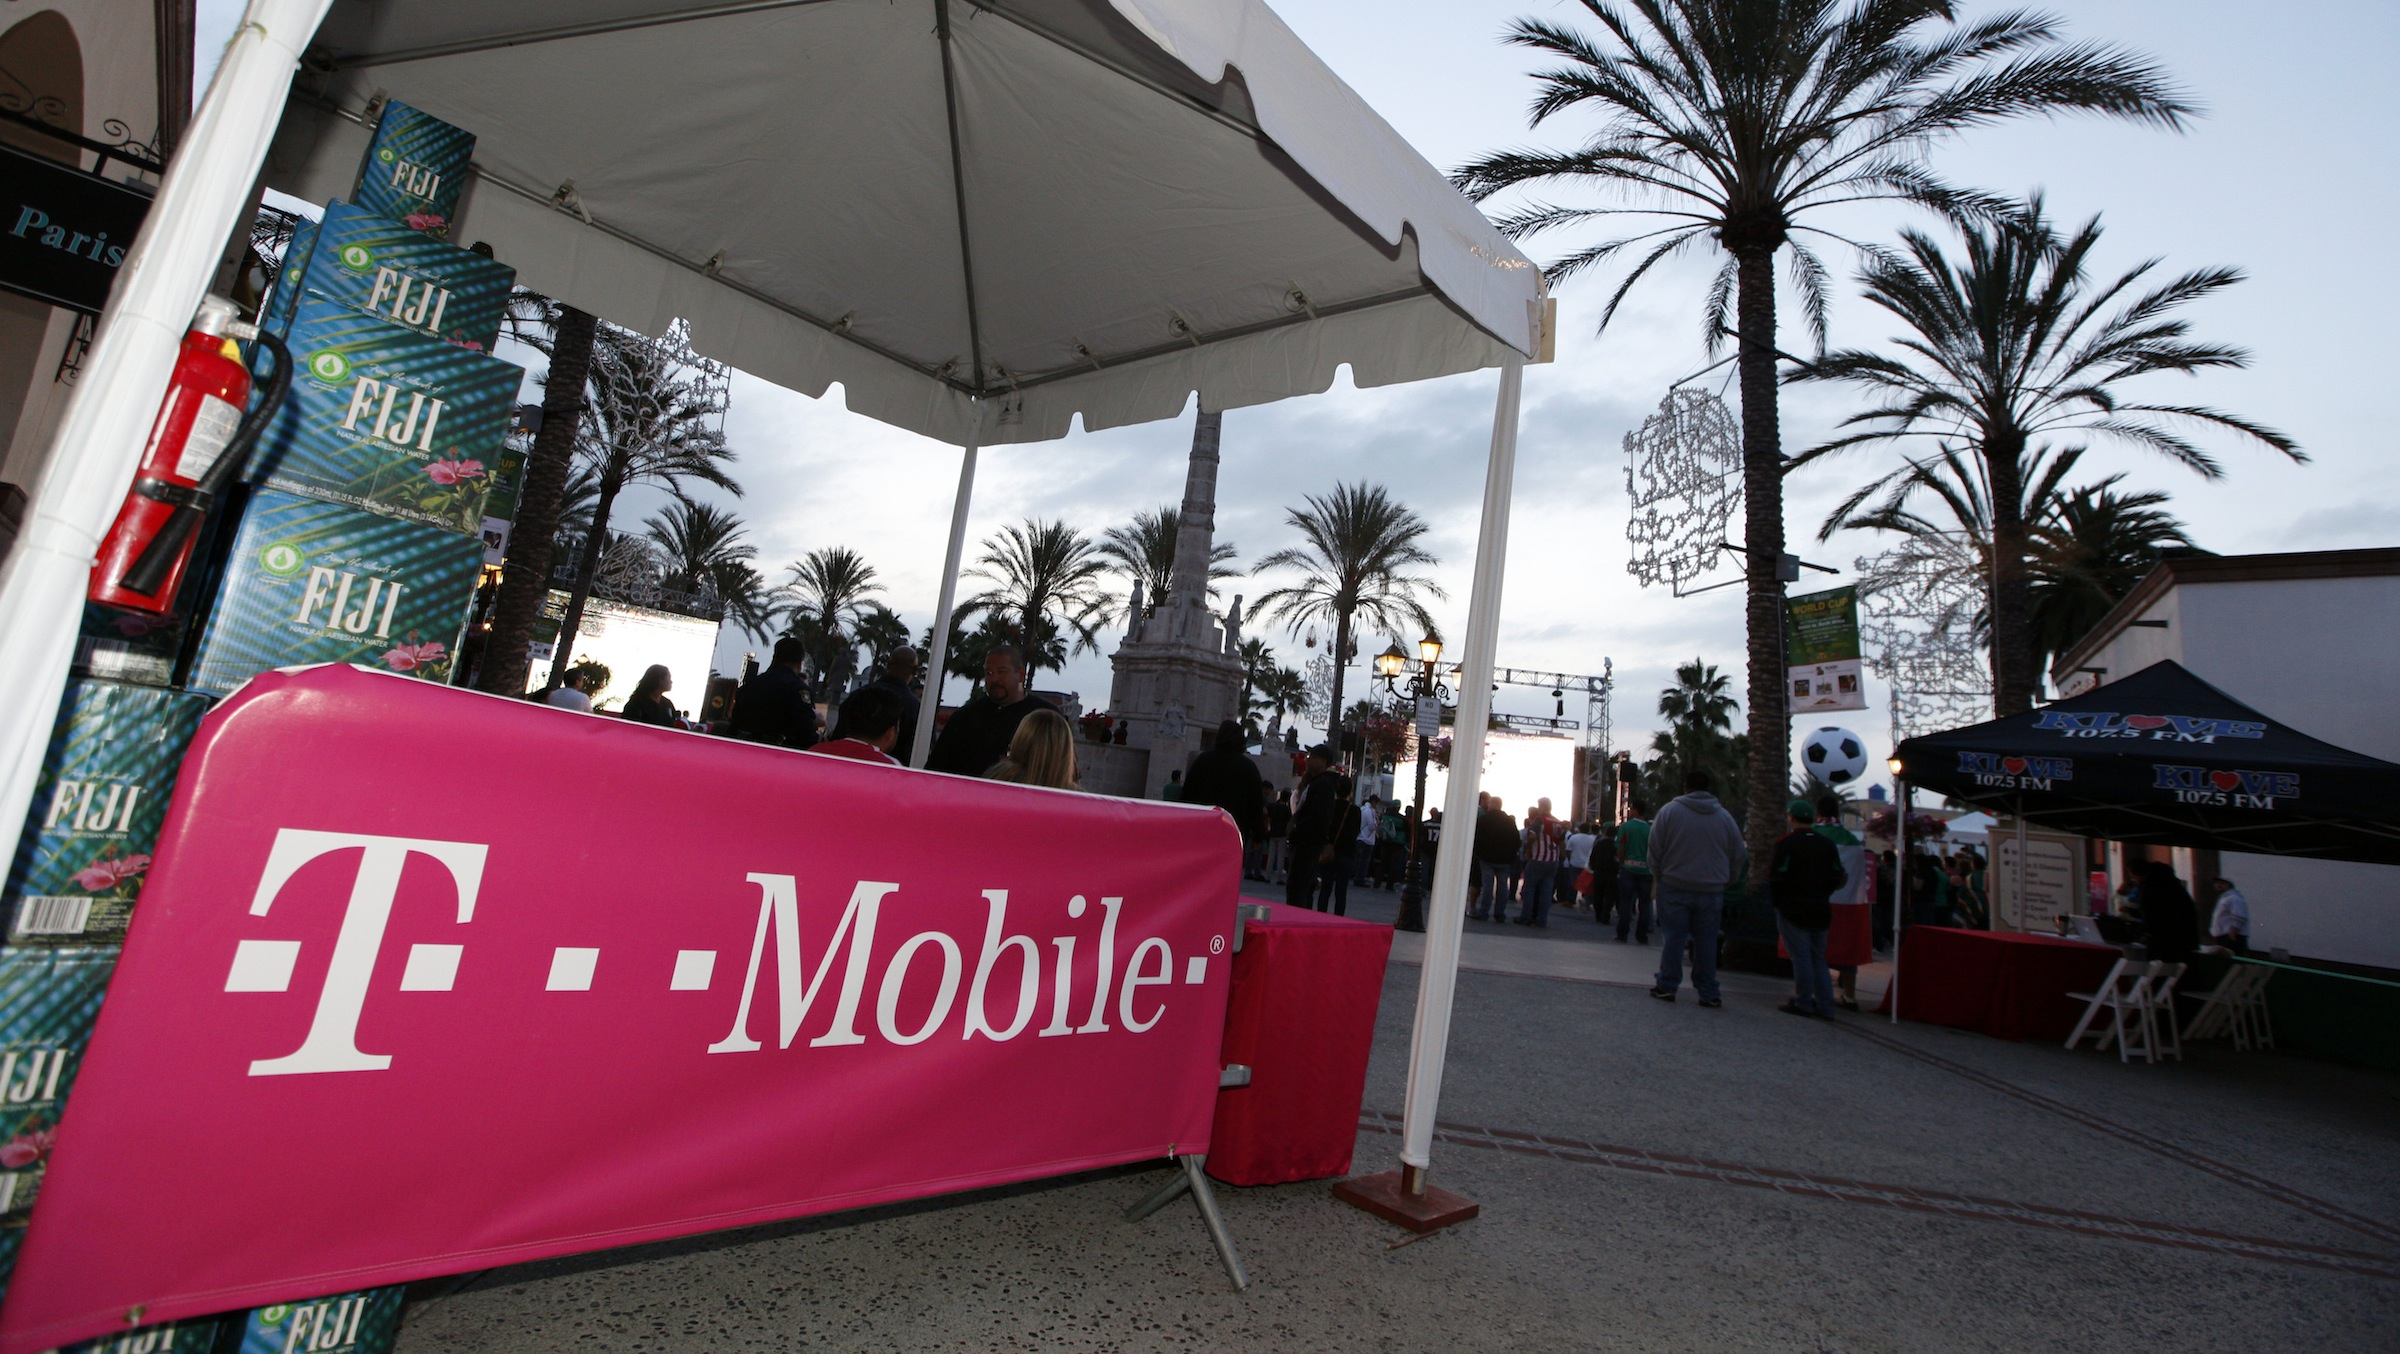 A general view of atmosphere at the T-Mobile World Cup Viewing Party at Plaza Mexico on Friday, June 11, 2010 in Lynwood, Calif.  (Casey Rodgers/AP Images for T-Mobile)